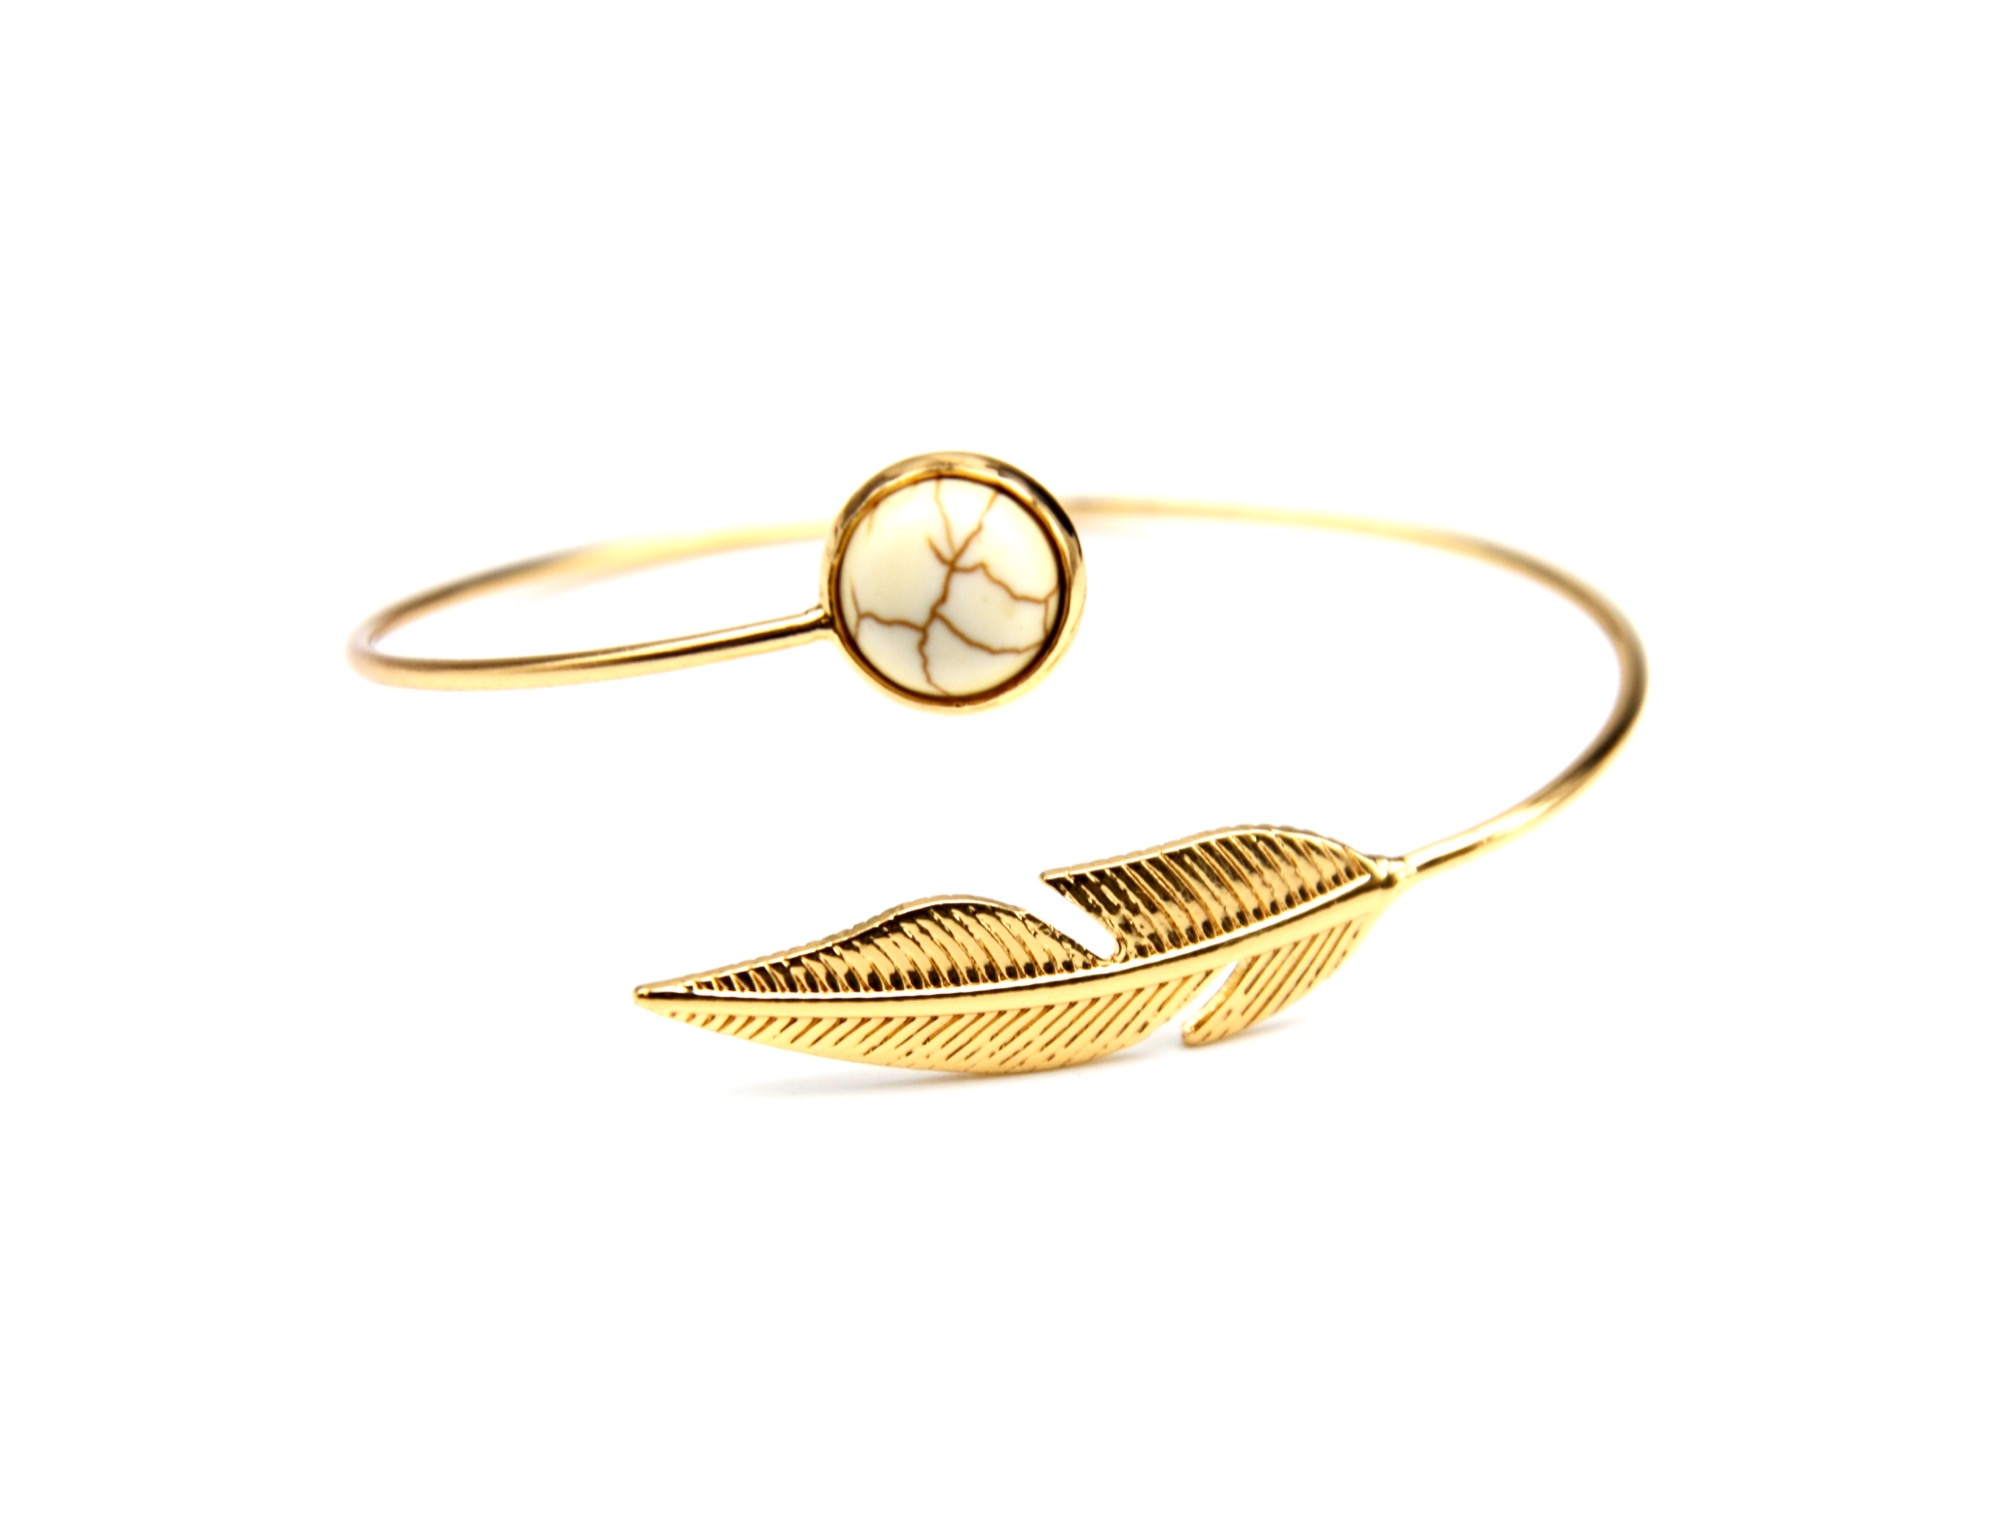 bangles gold rg open white rose halo cuff bangle jewelry bracelet with in bracelets fascinating nl heart diamond